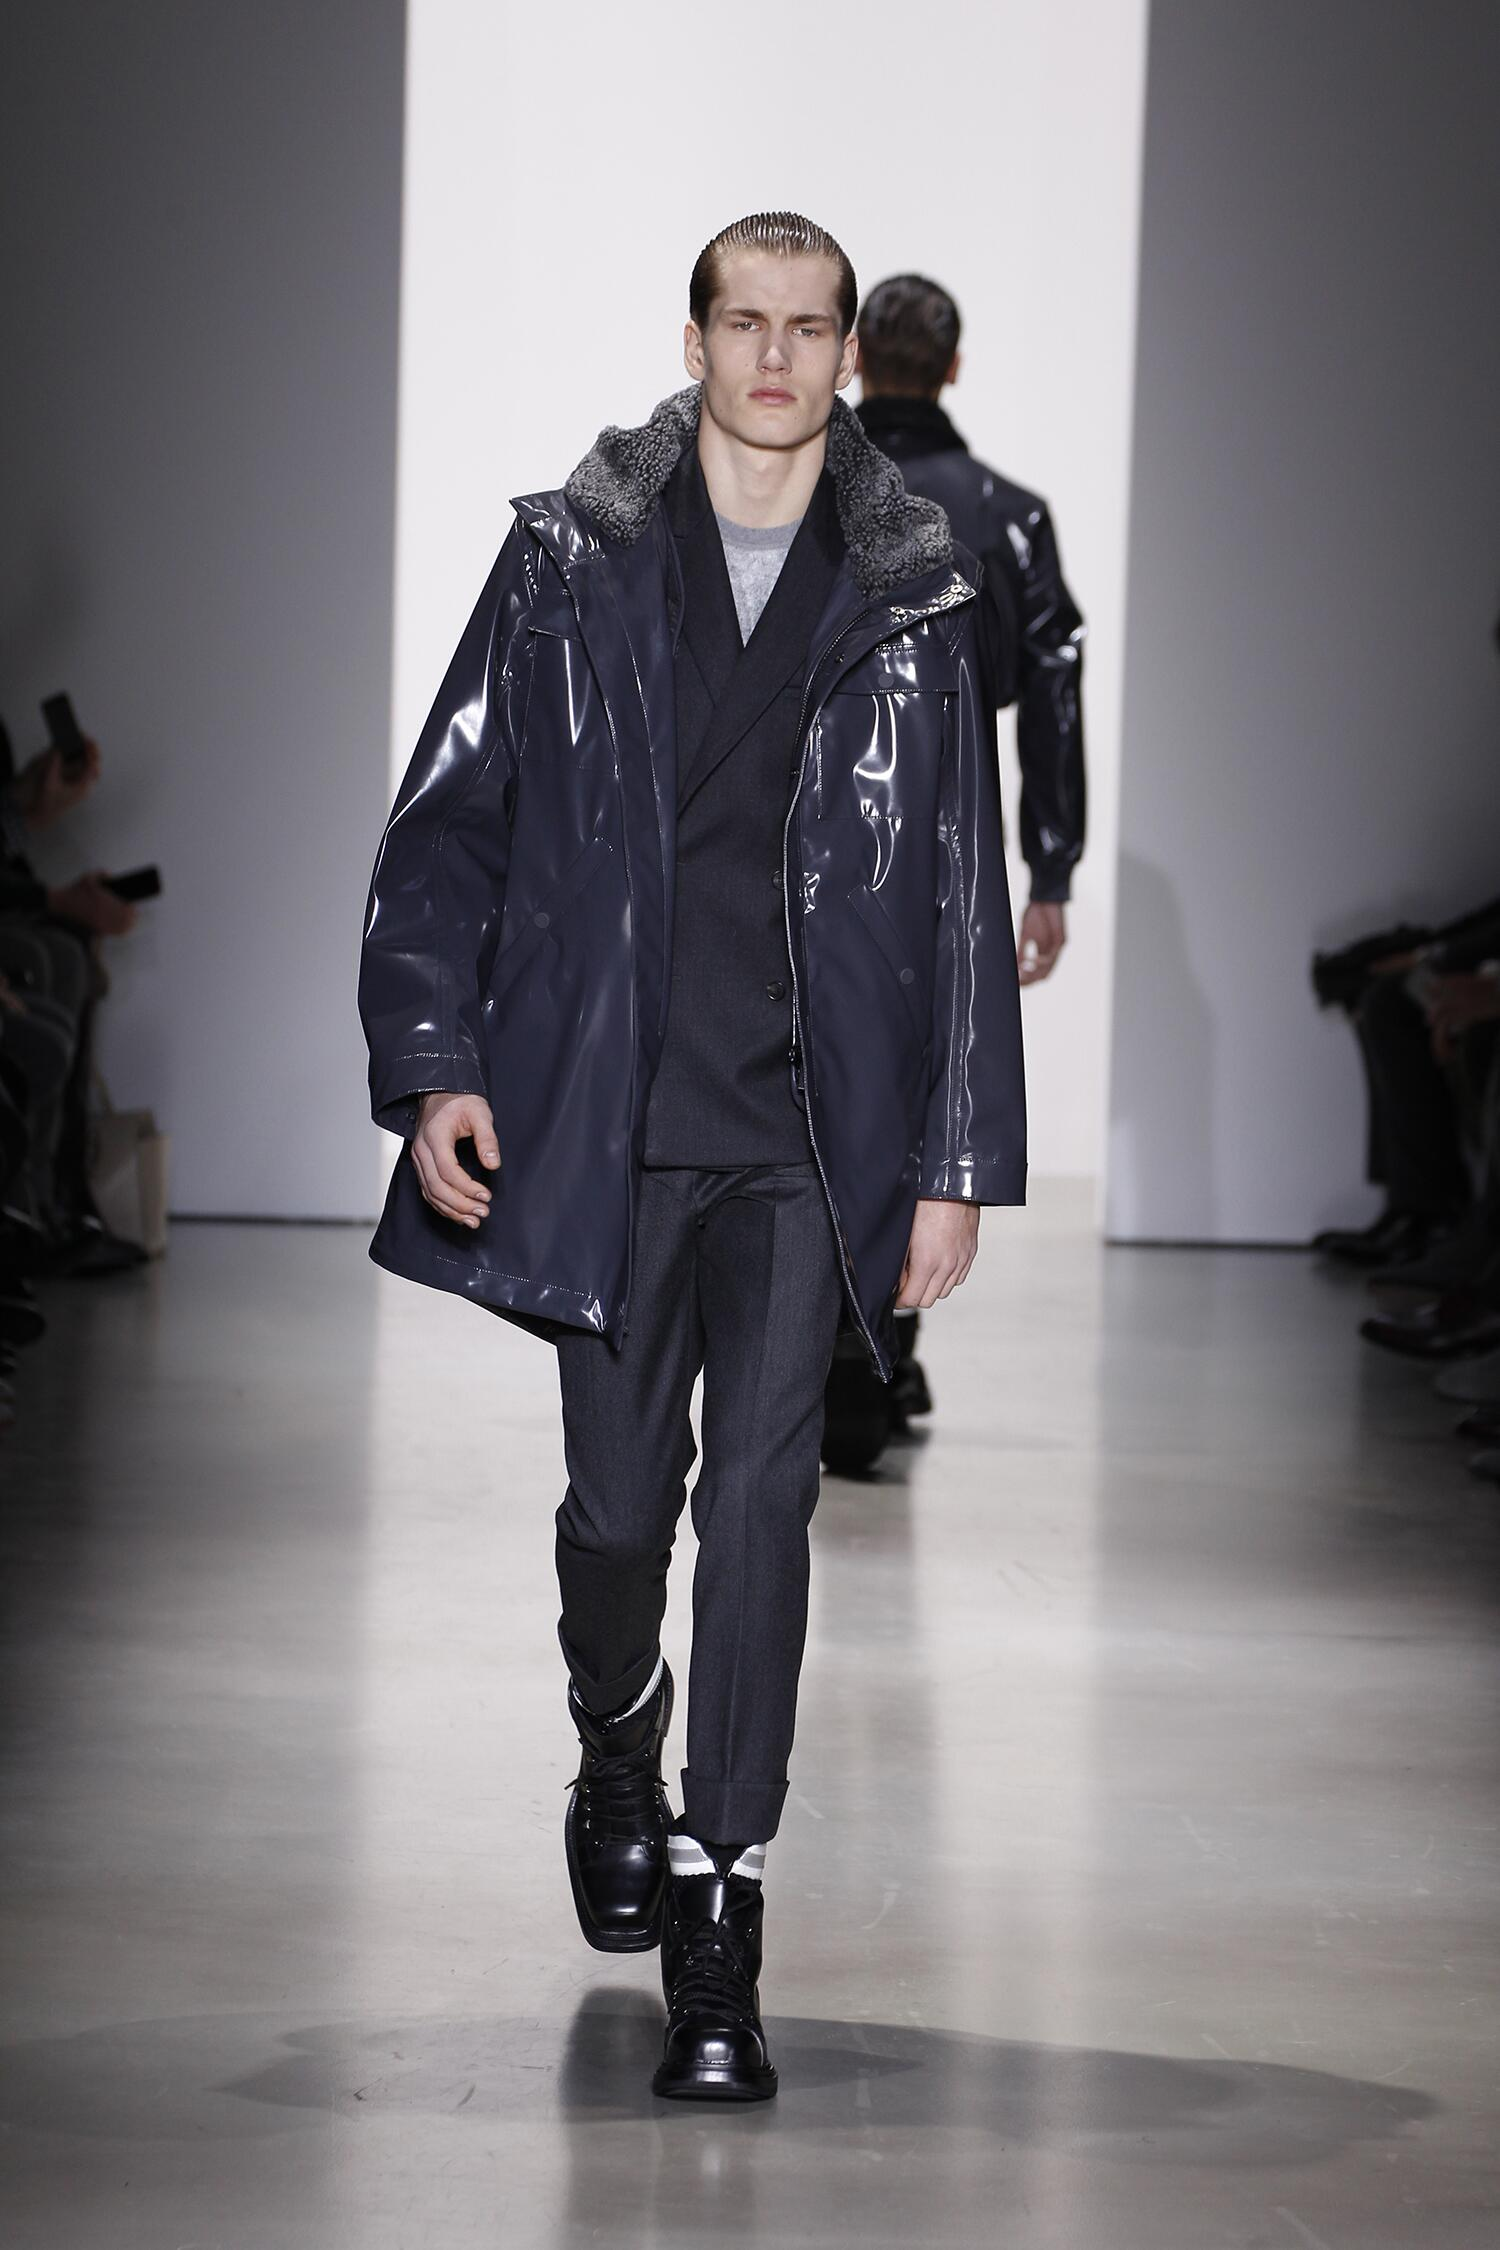 Catwalk Calvin Klein Fall Winter 2015 16 Men's Collection Milano Fashion Week